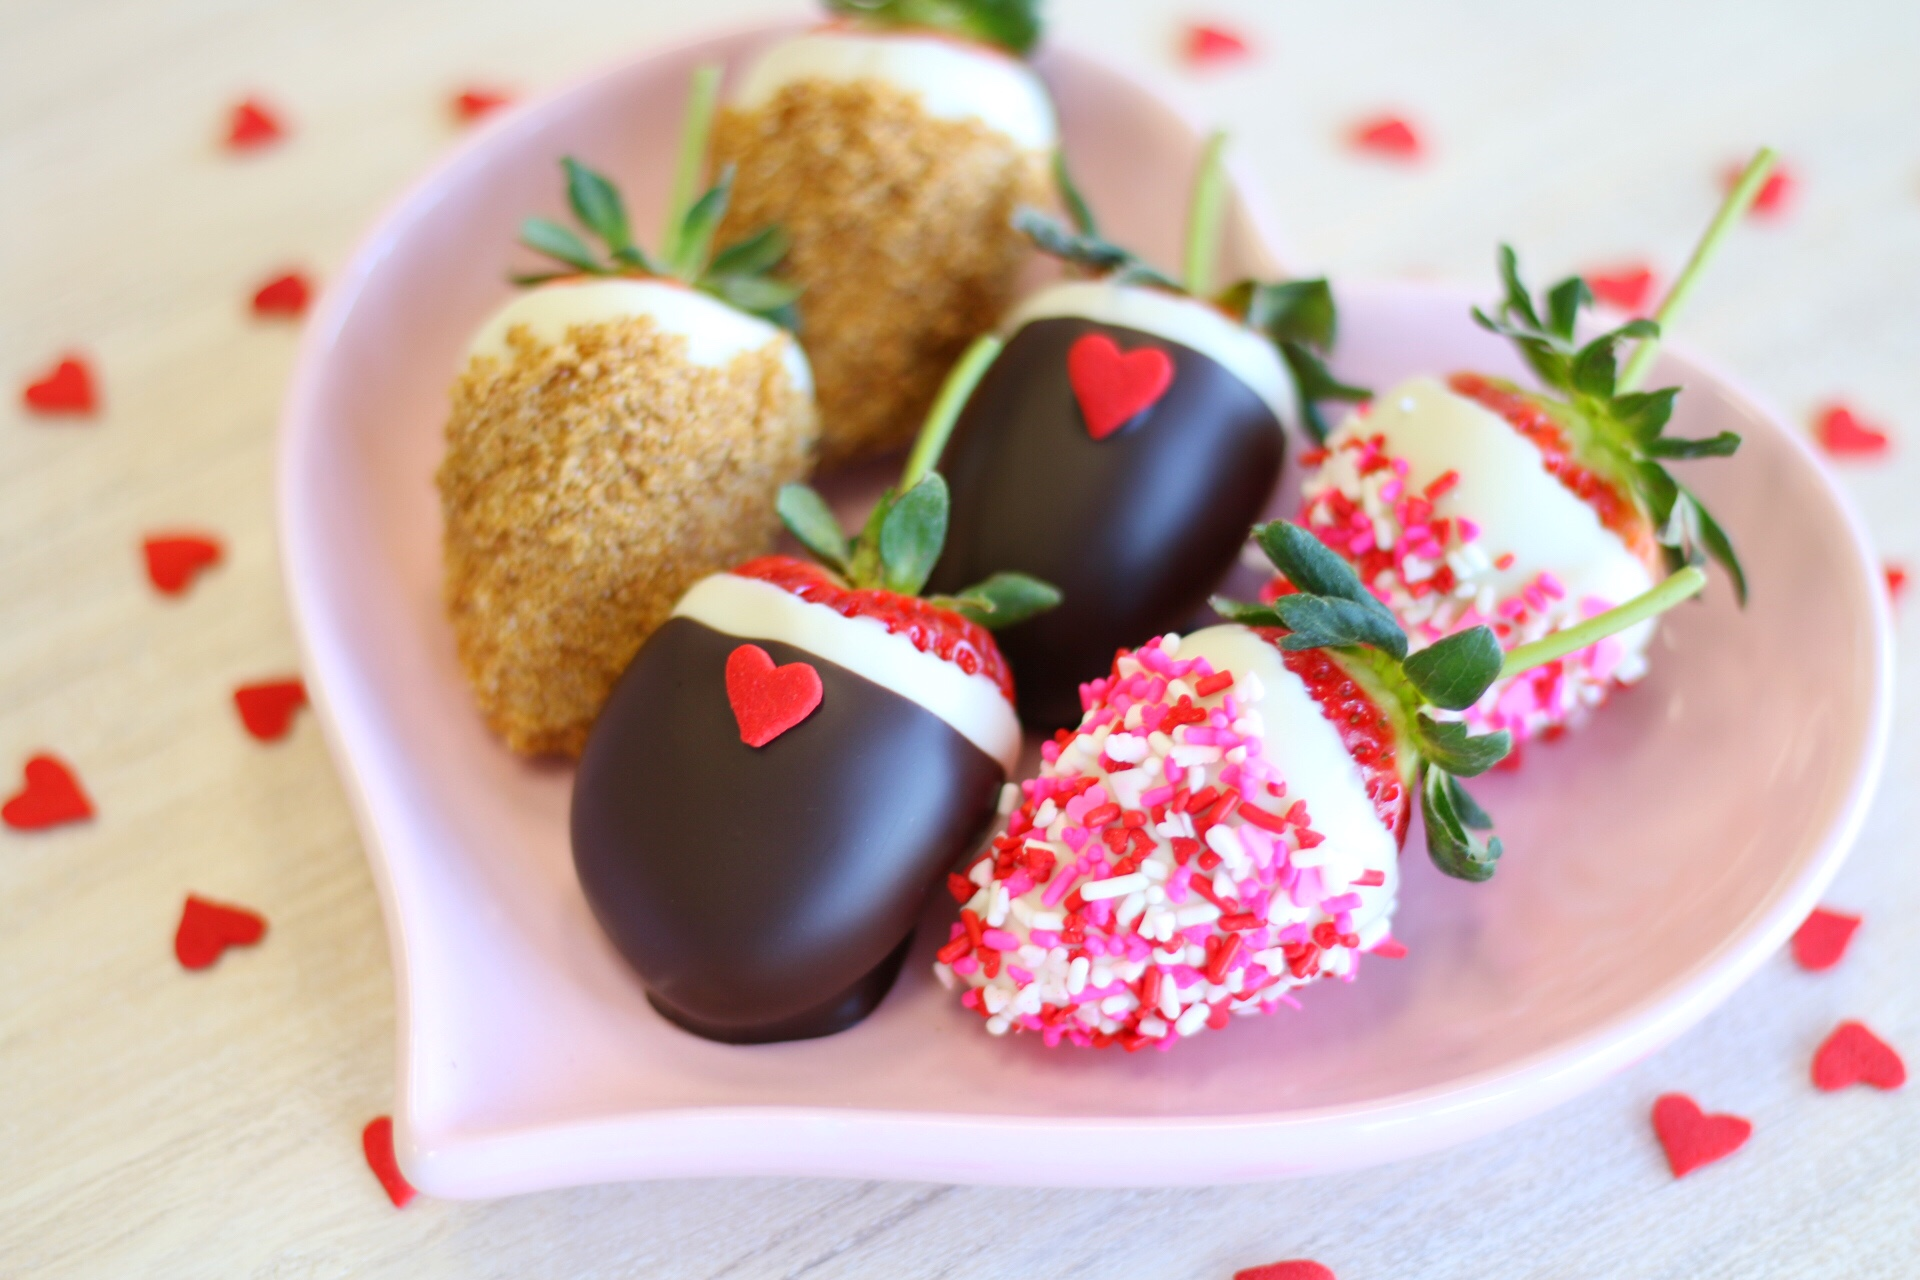 Chocolate Covered Strawberry [2/12-2/14 ONLY]